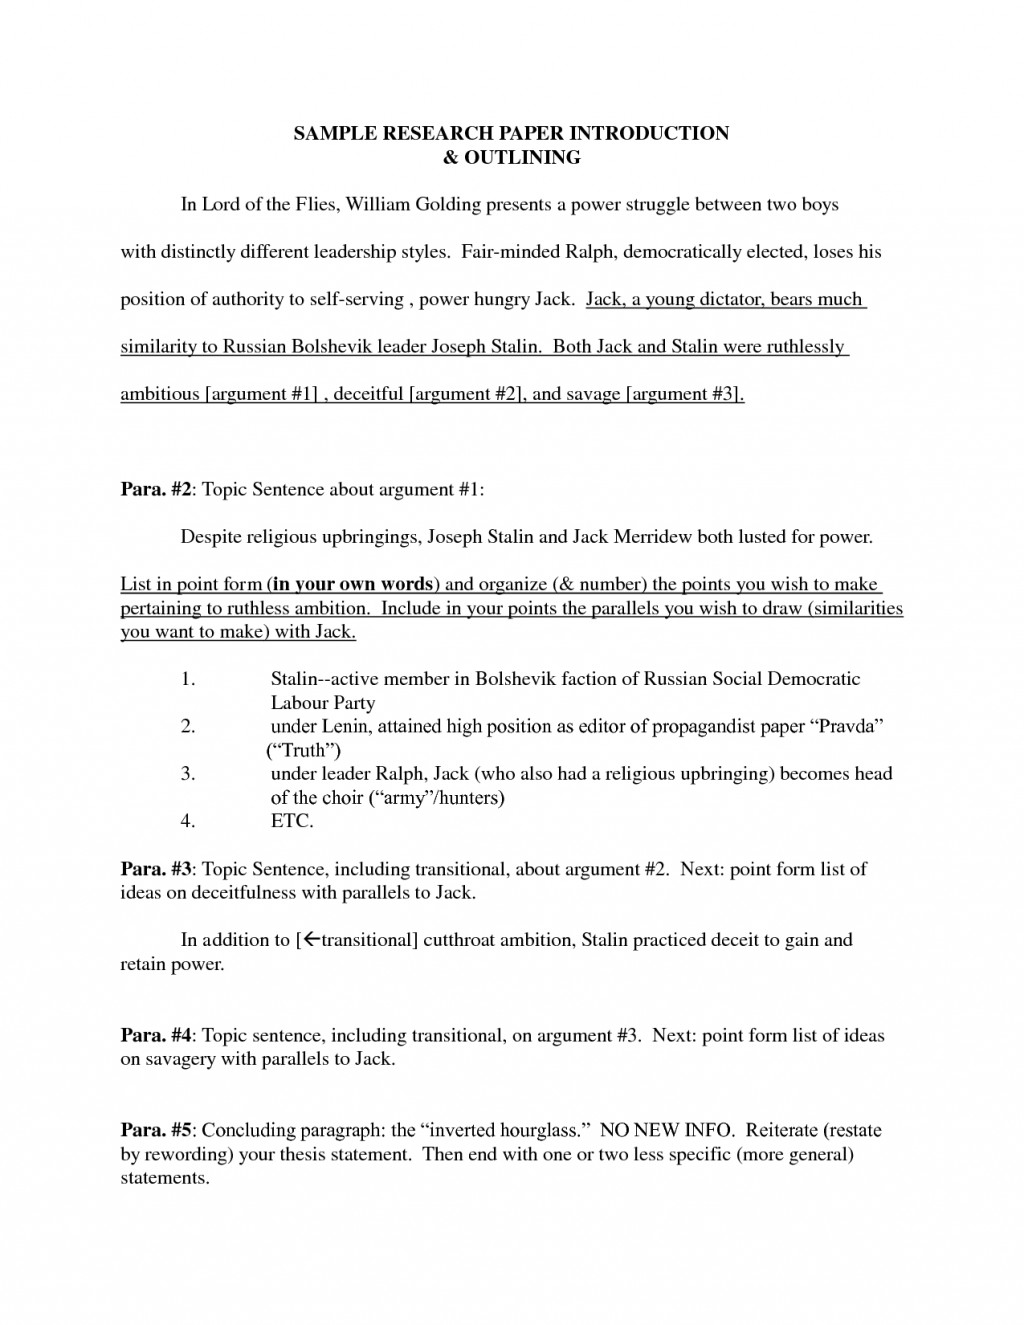 005 Writing An Introduction To Research Paper Top A Intro Steps In Large